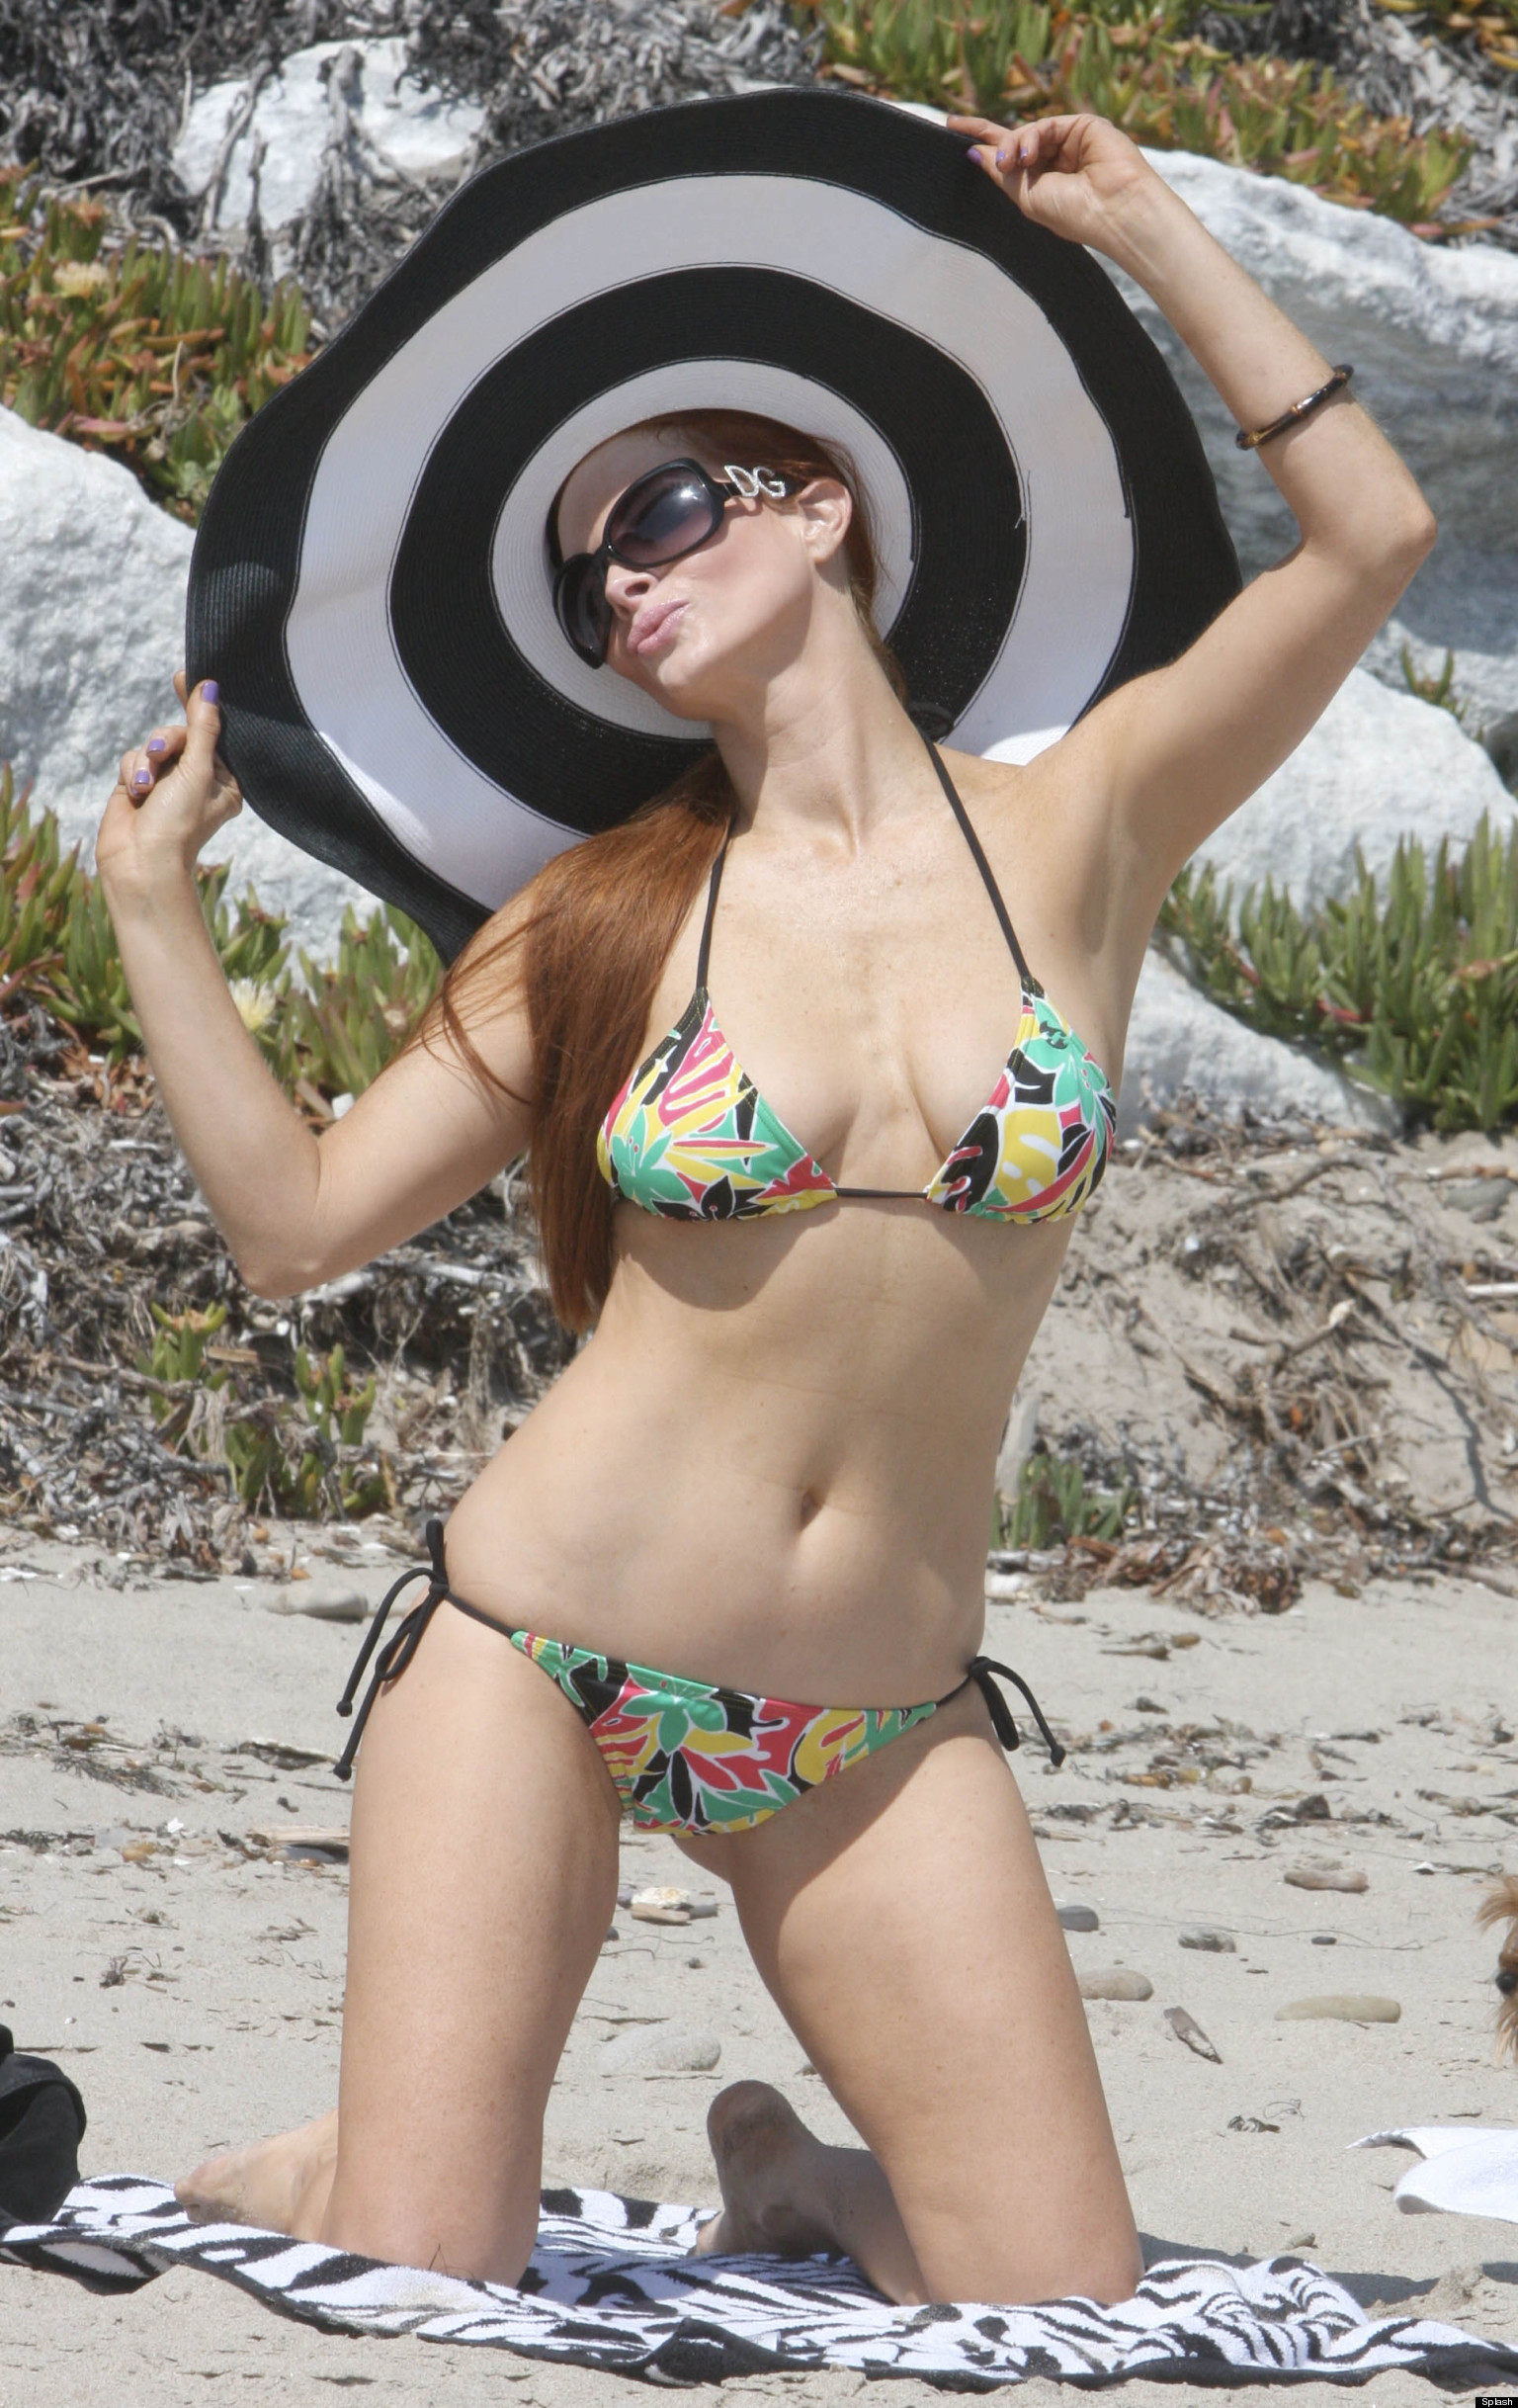 Who On Earth Is Phoebe Price? (PICTURES)